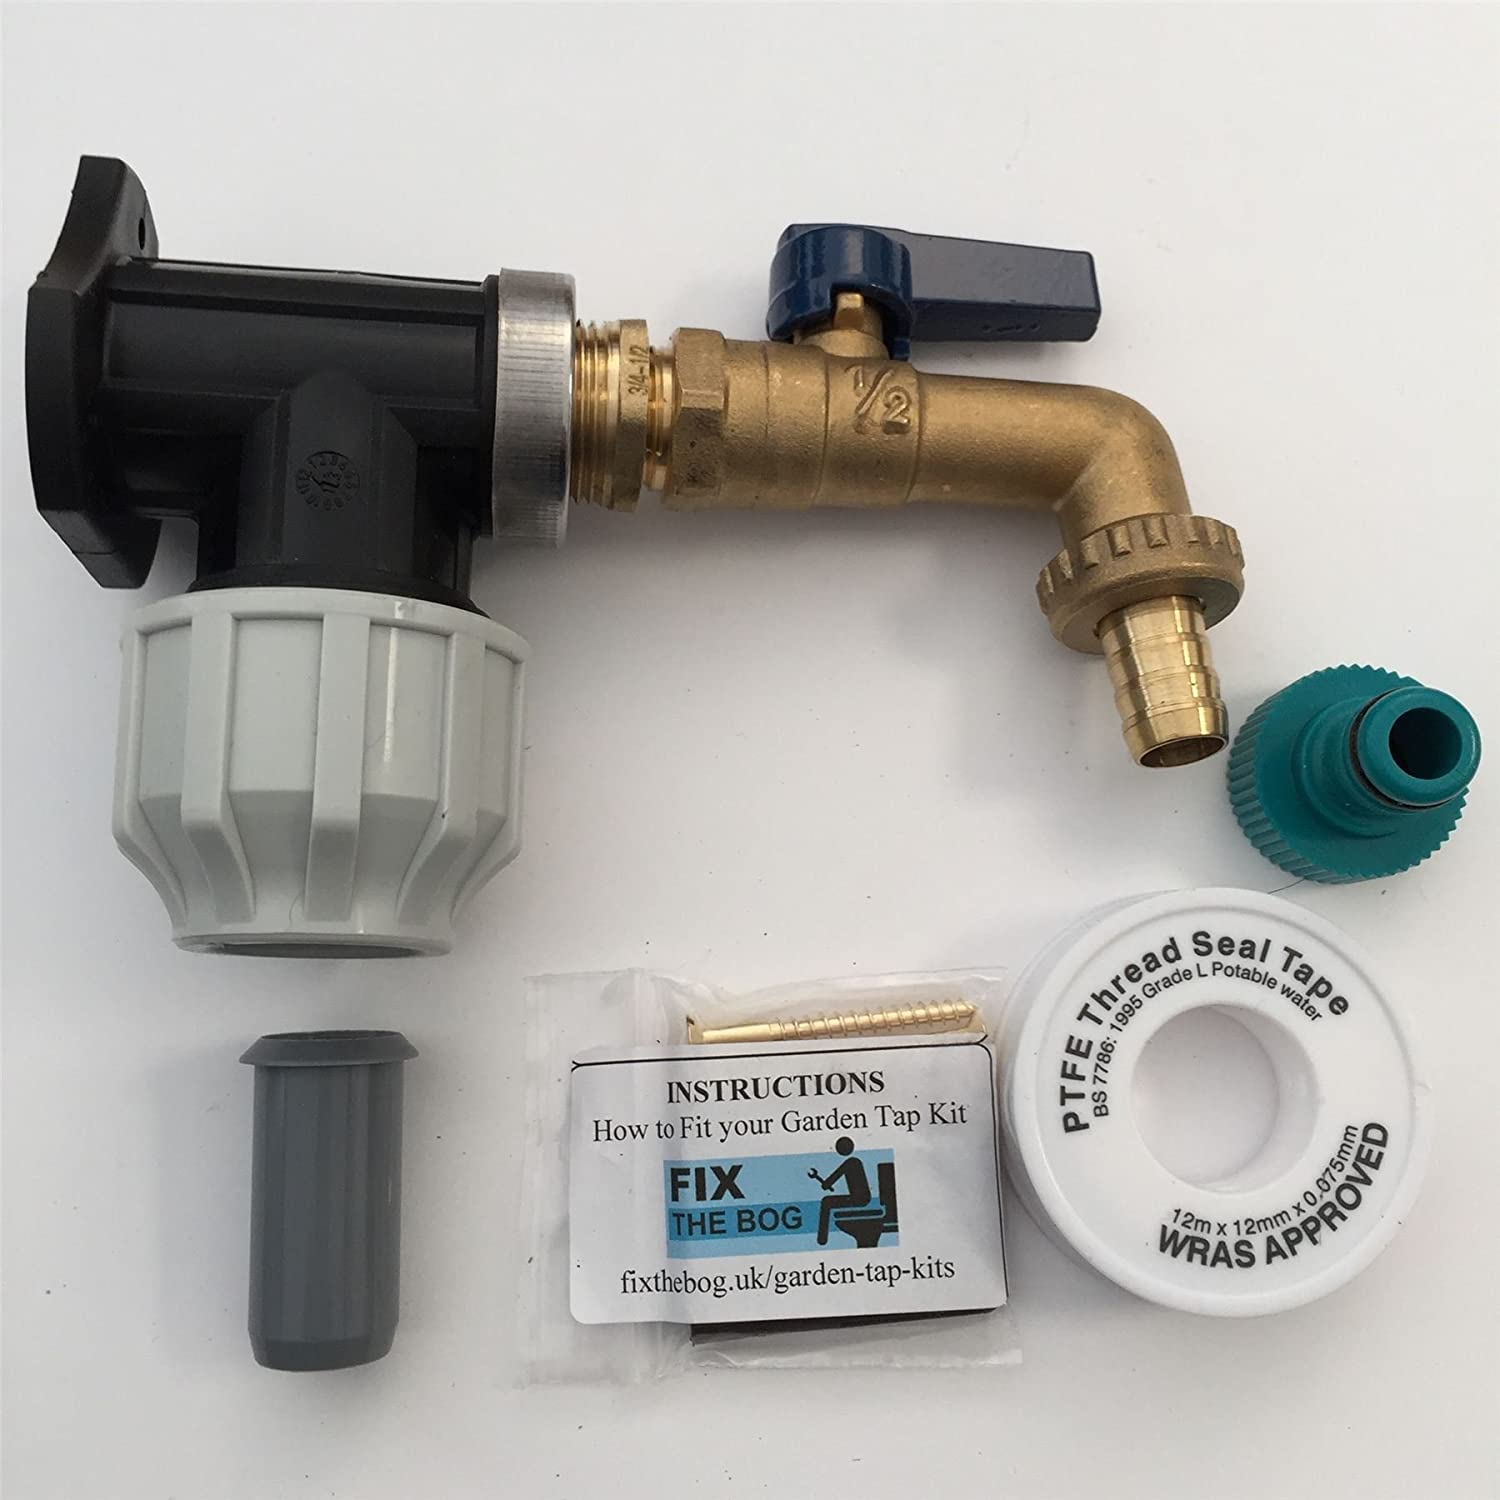 FixtheBog 25mm MDPE Outside Tap Kit With Plastic Wall Plate & Garden Hose Fitting lever FixtheDrip